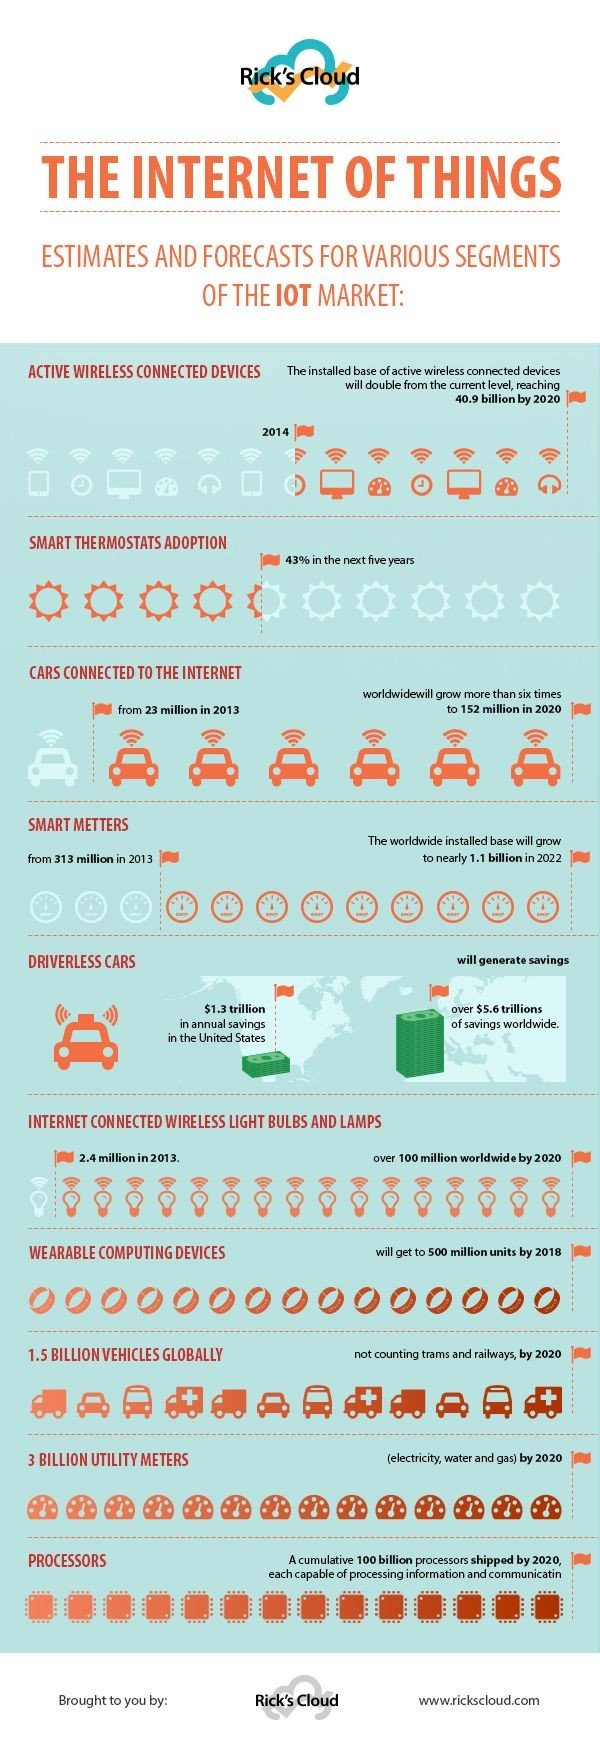 The internet of things #IOT estimates and forecasts for varioud segments of the market #Smart_City #Infographic